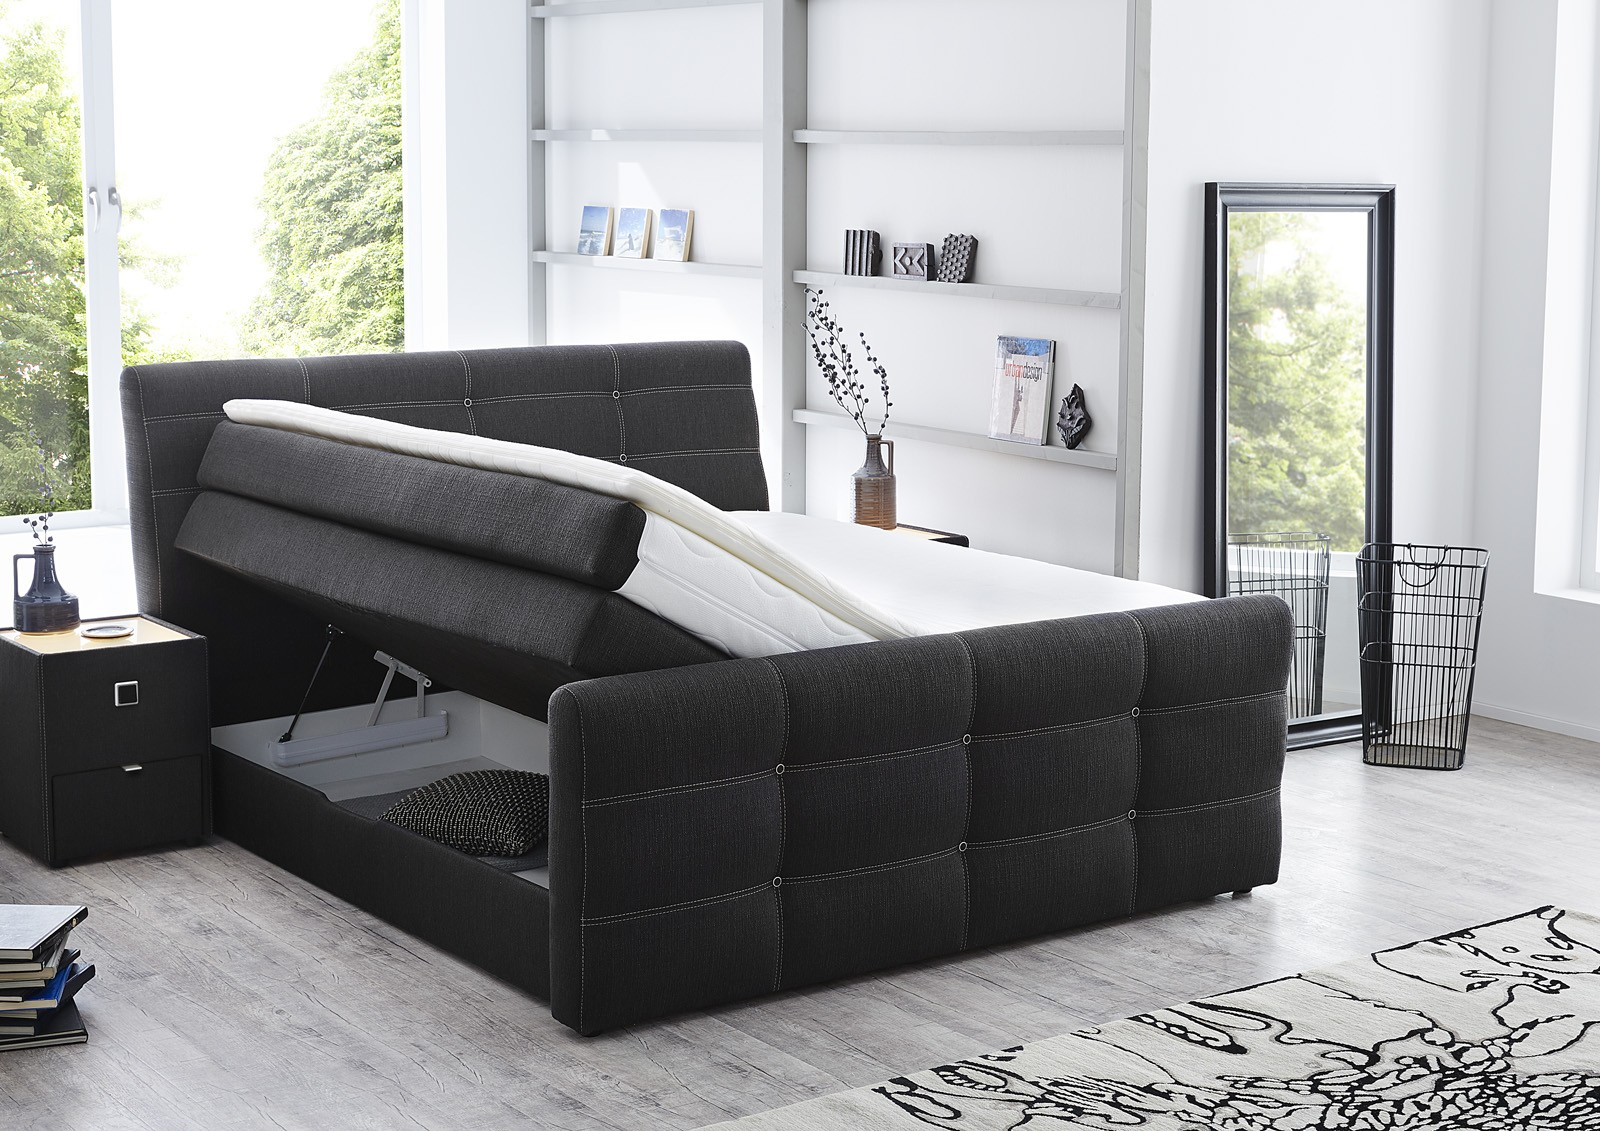 boxspringbett cary 180x200 cm grau hotelbett mit komforth he mit bettkasten ebay. Black Bedroom Furniture Sets. Home Design Ideas